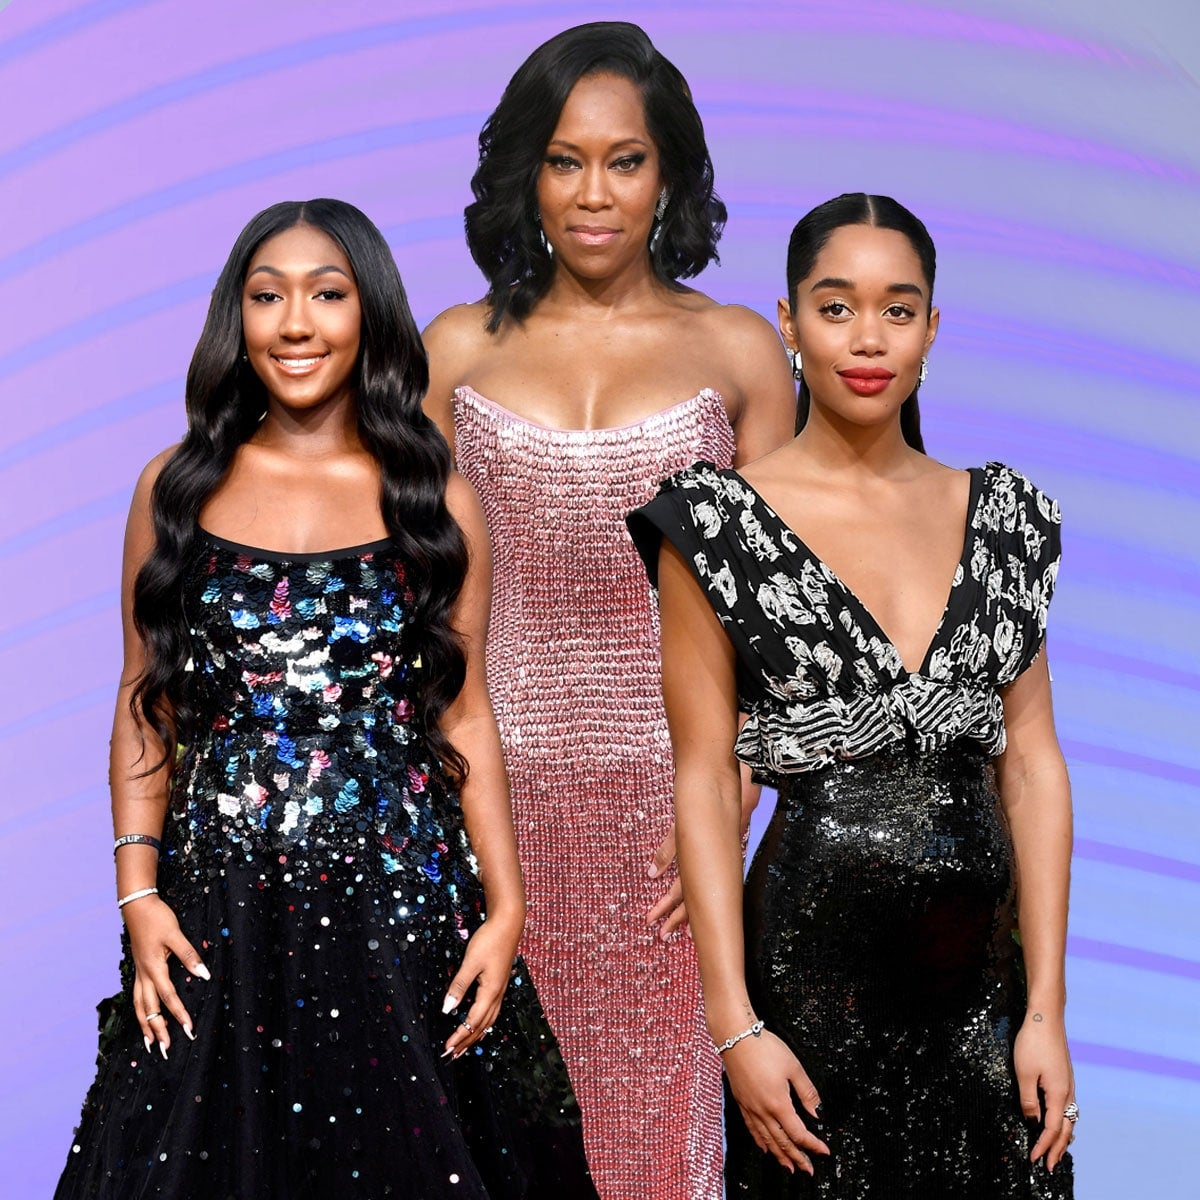 Best Globes Of The Golden Globes: All The Most Amazing Fashion Moments At The 2019 Golden